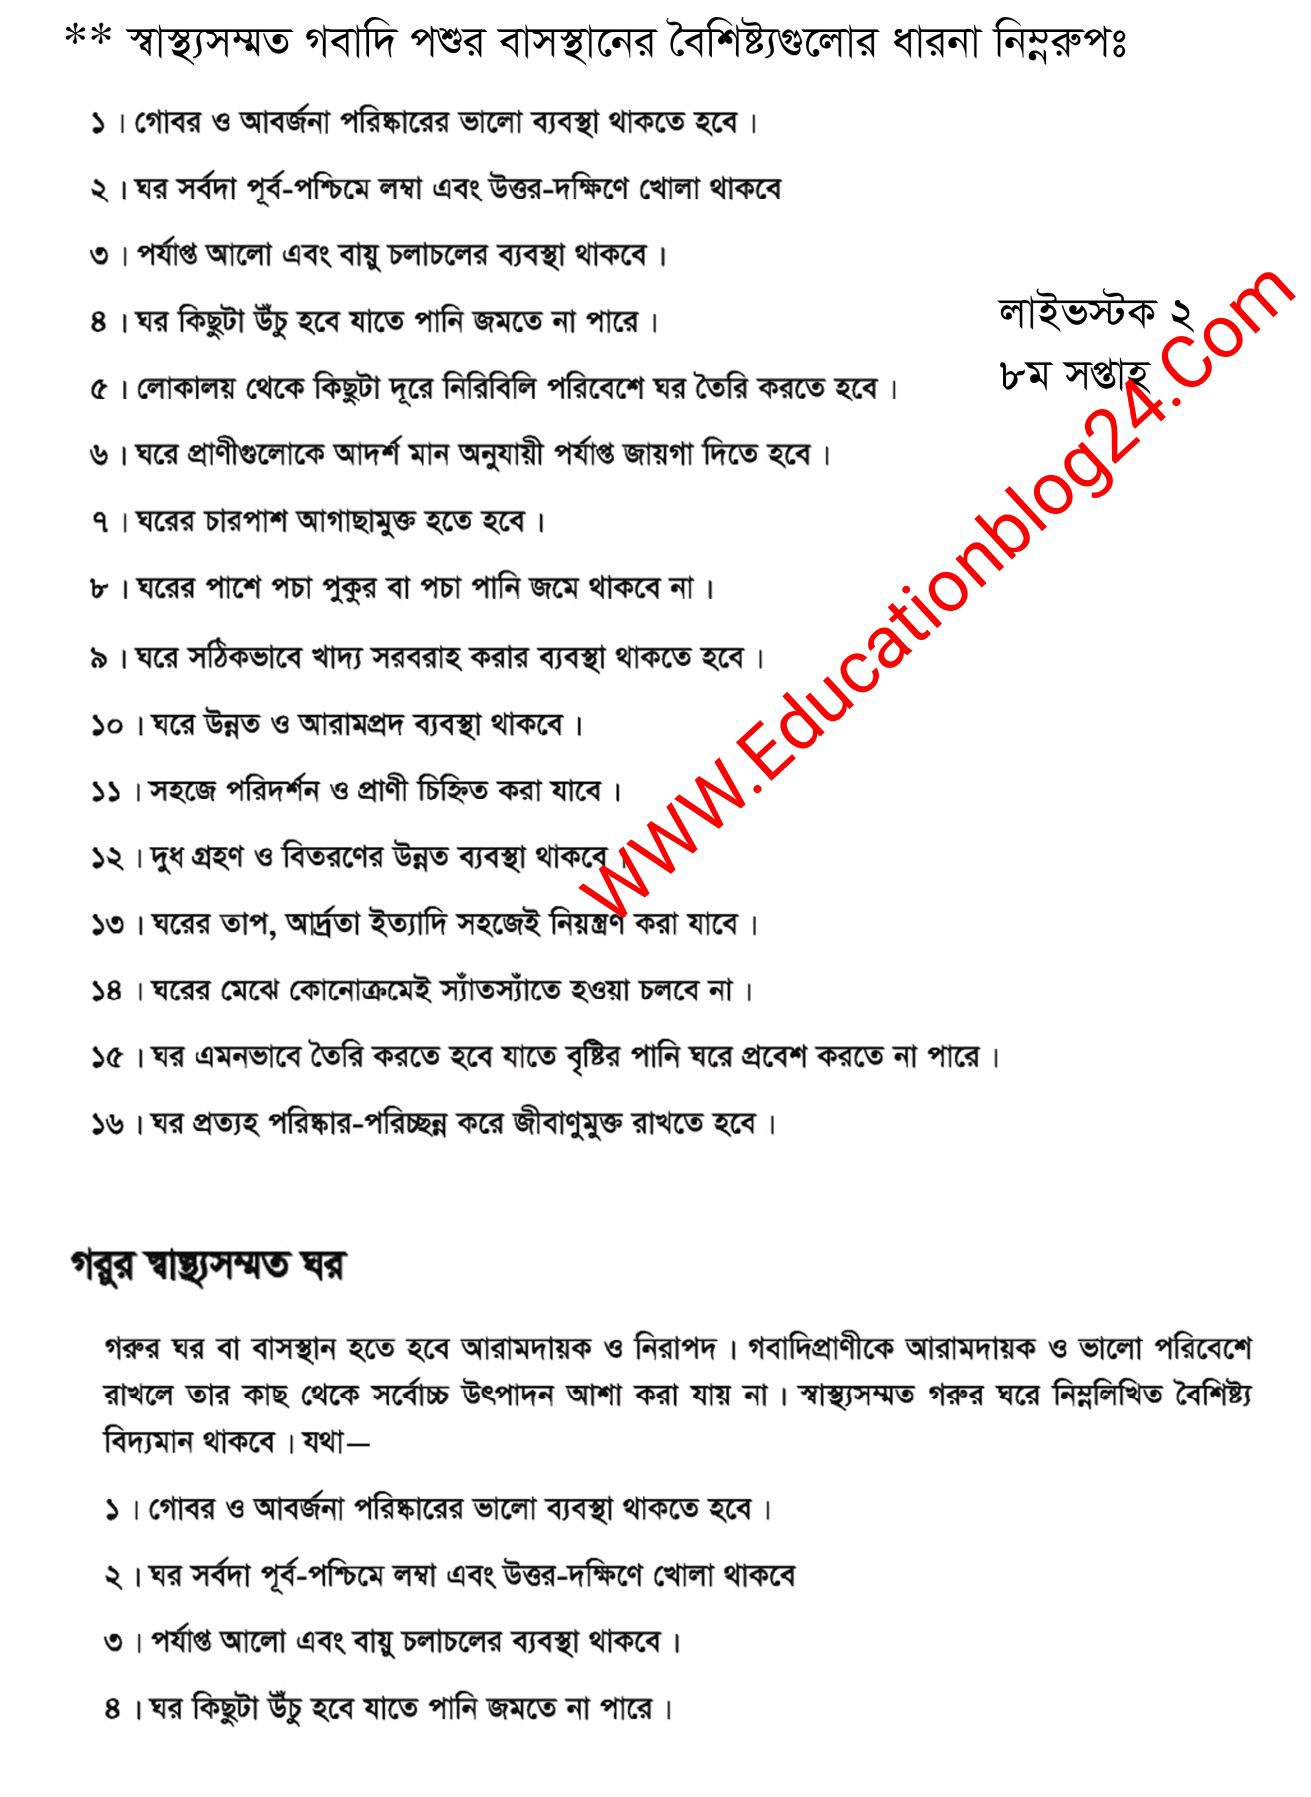 SSC / Dakhil (Vocational) Livestock Rearing and Farming Assignment Answer 2021 2